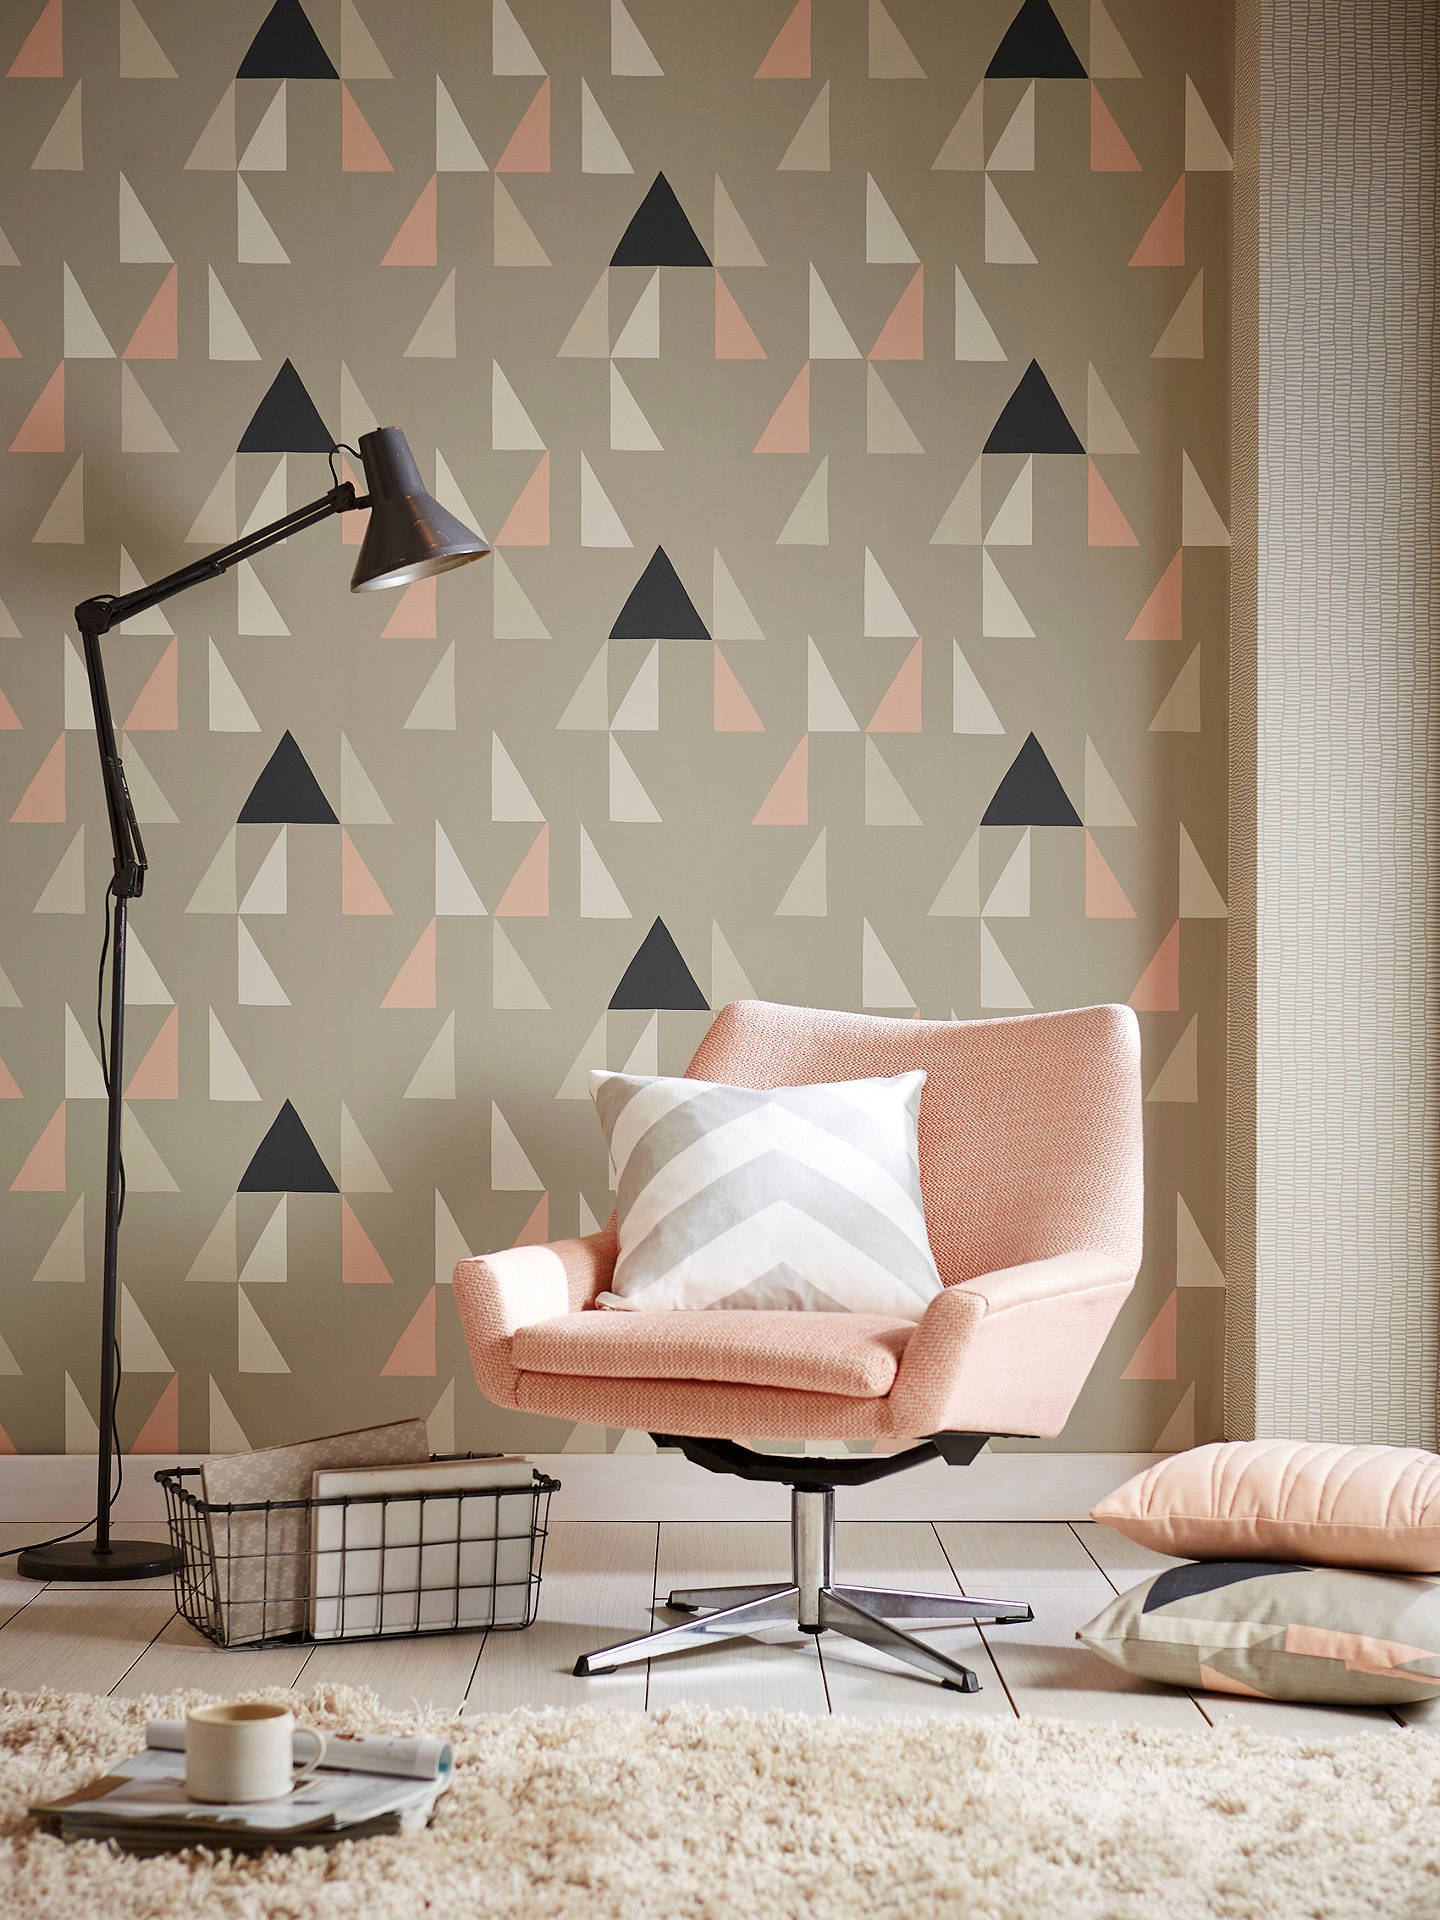 BuyScion Lohko Modul Wallpaper, Blush 111305 Online at johnlewis.com